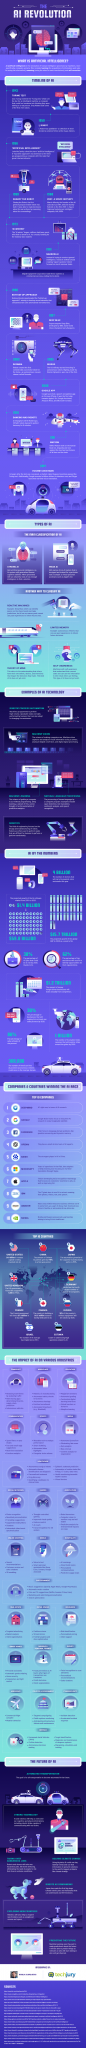 REAL infographic ai revolution